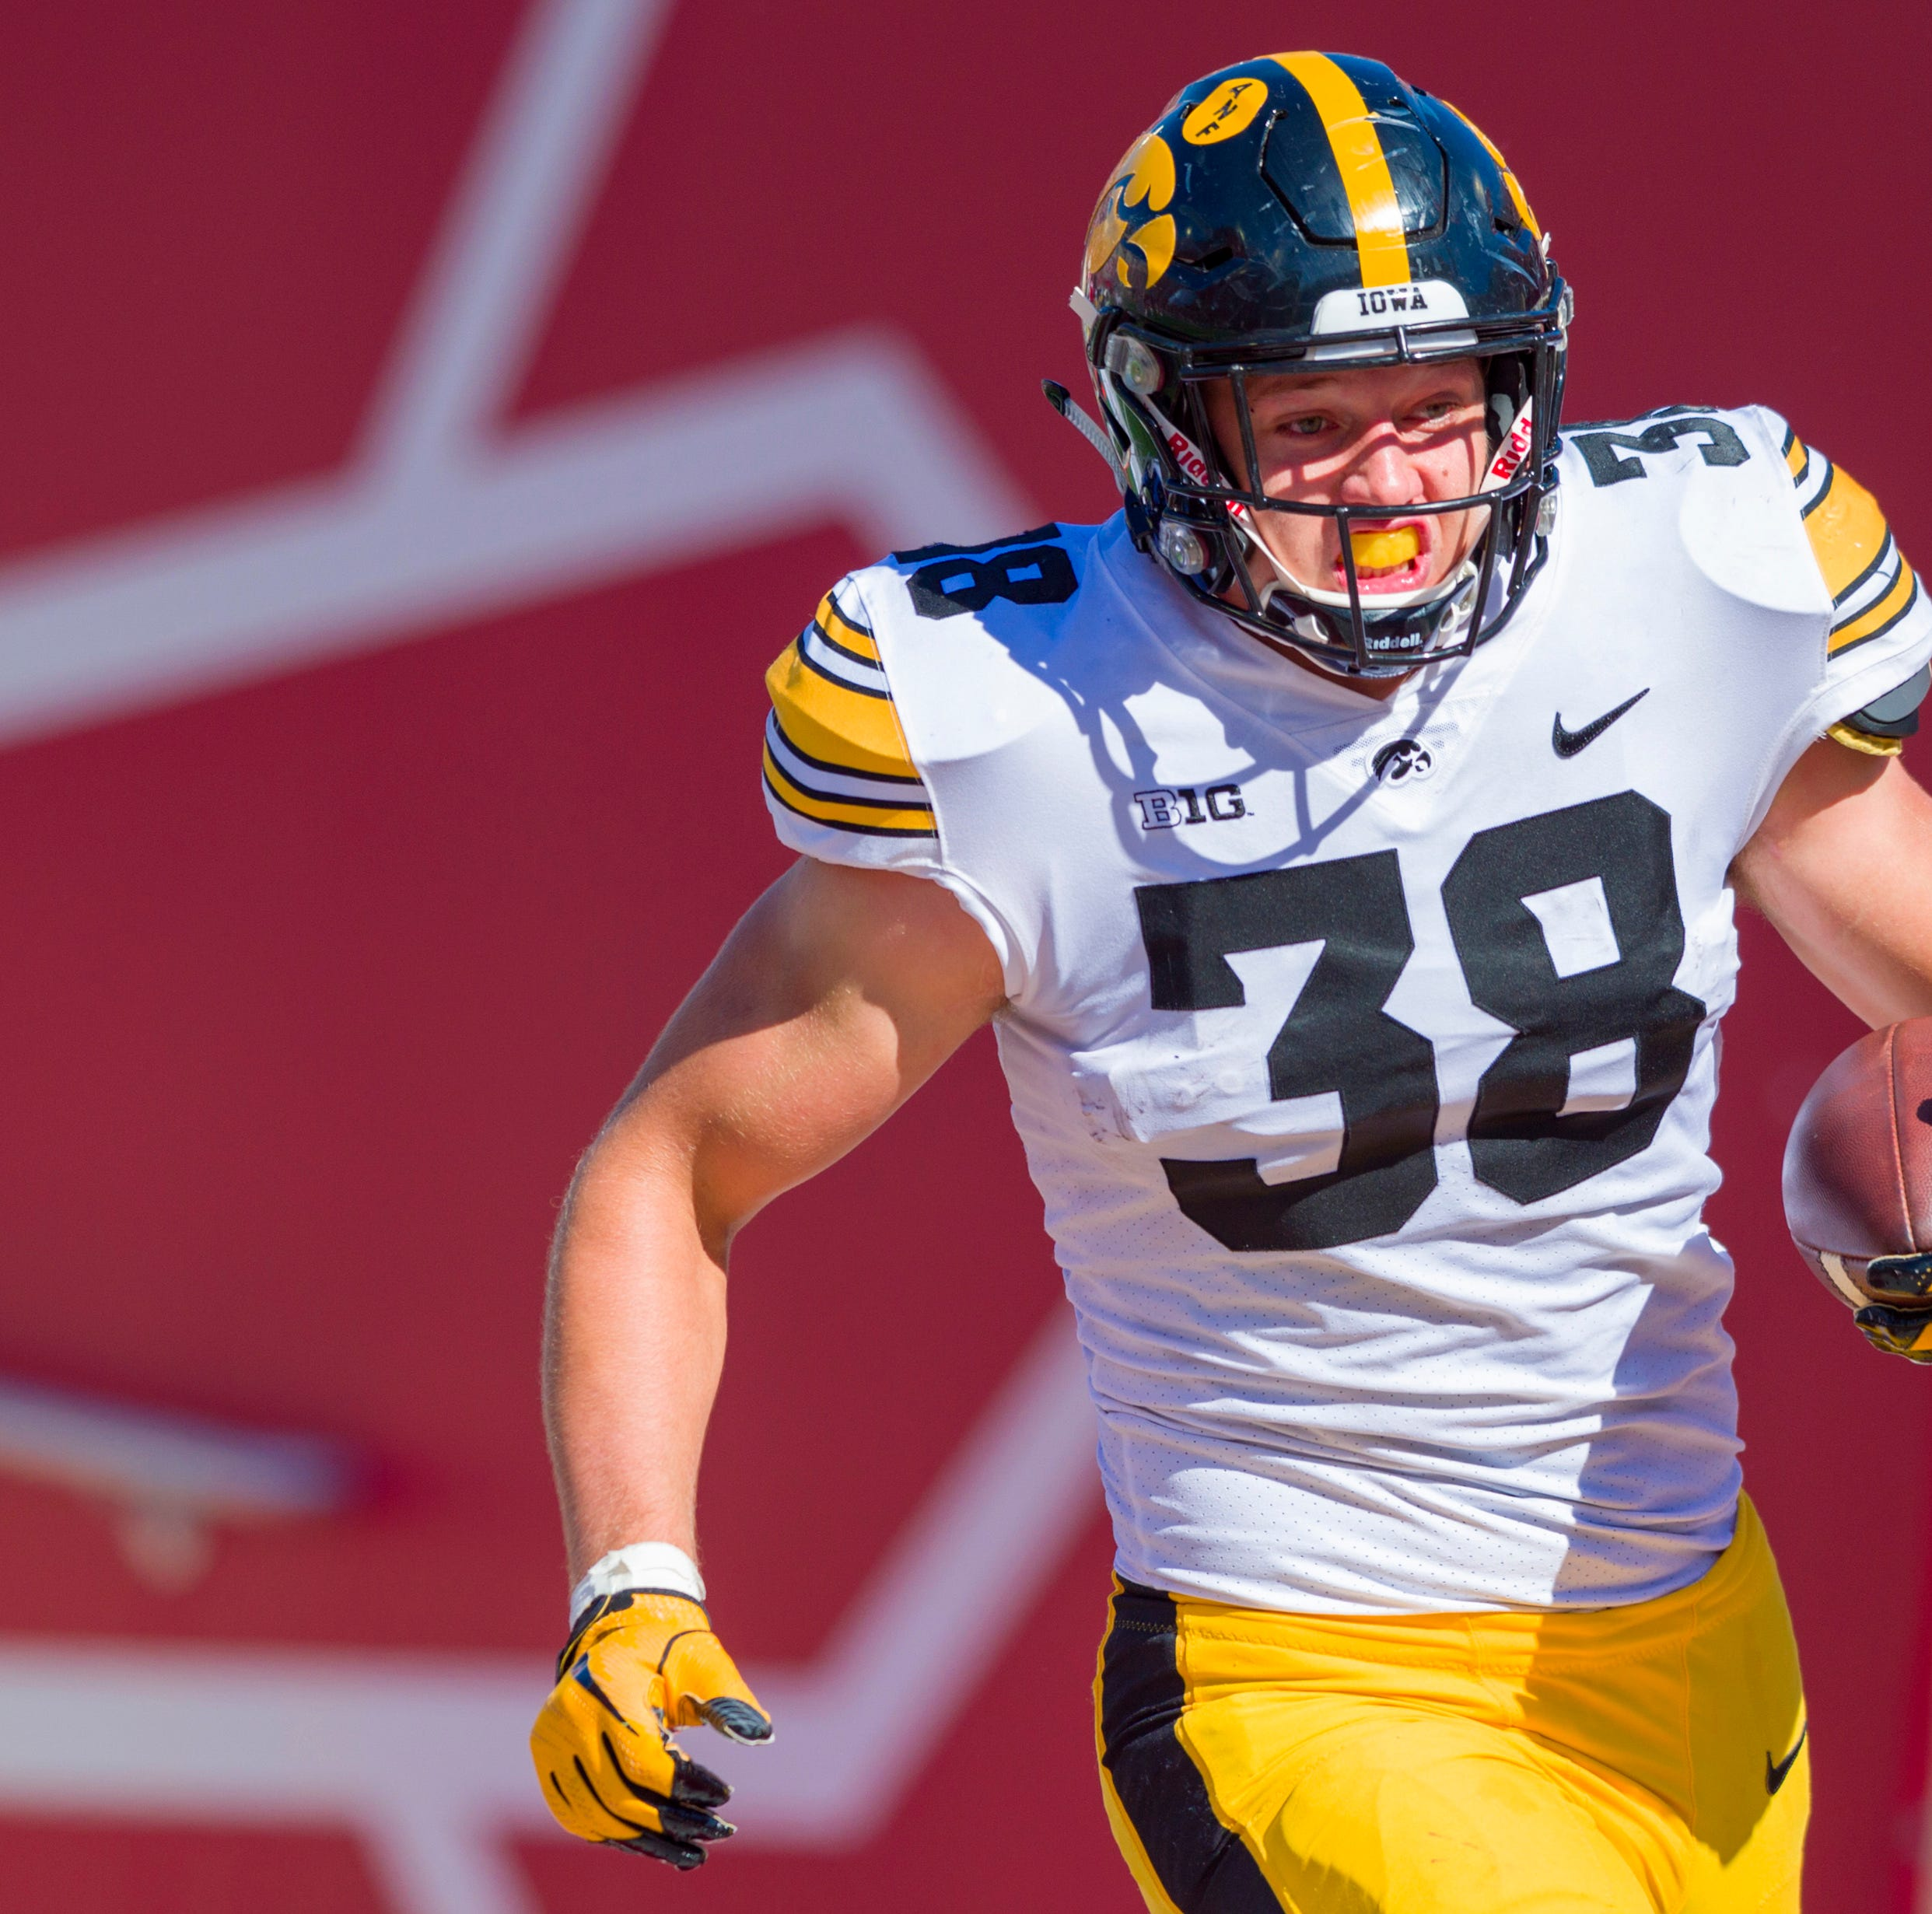 ESPN's Todd McShay explains why Lions should go T.J. Hockenson over DE at No. 8